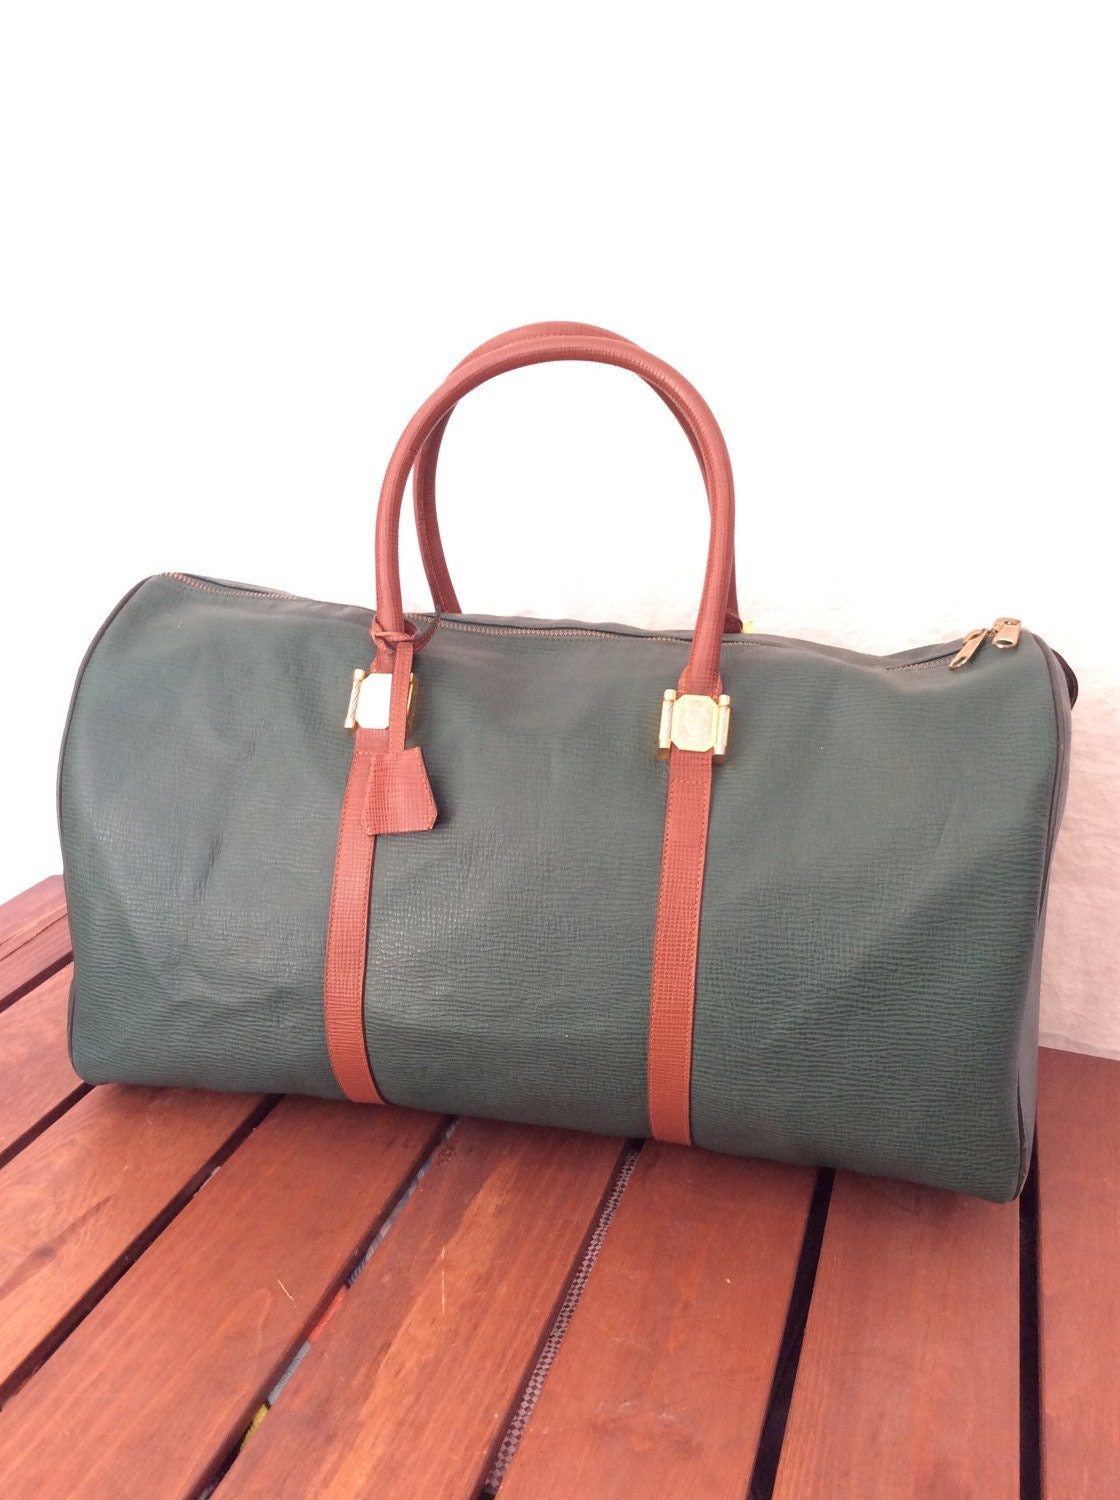 Large Vintage Genuine Philippe Charriol Paris Green and Brown Leather  Duffle Bag Travel Luggage Over Night Bag 7ffd37c8ce